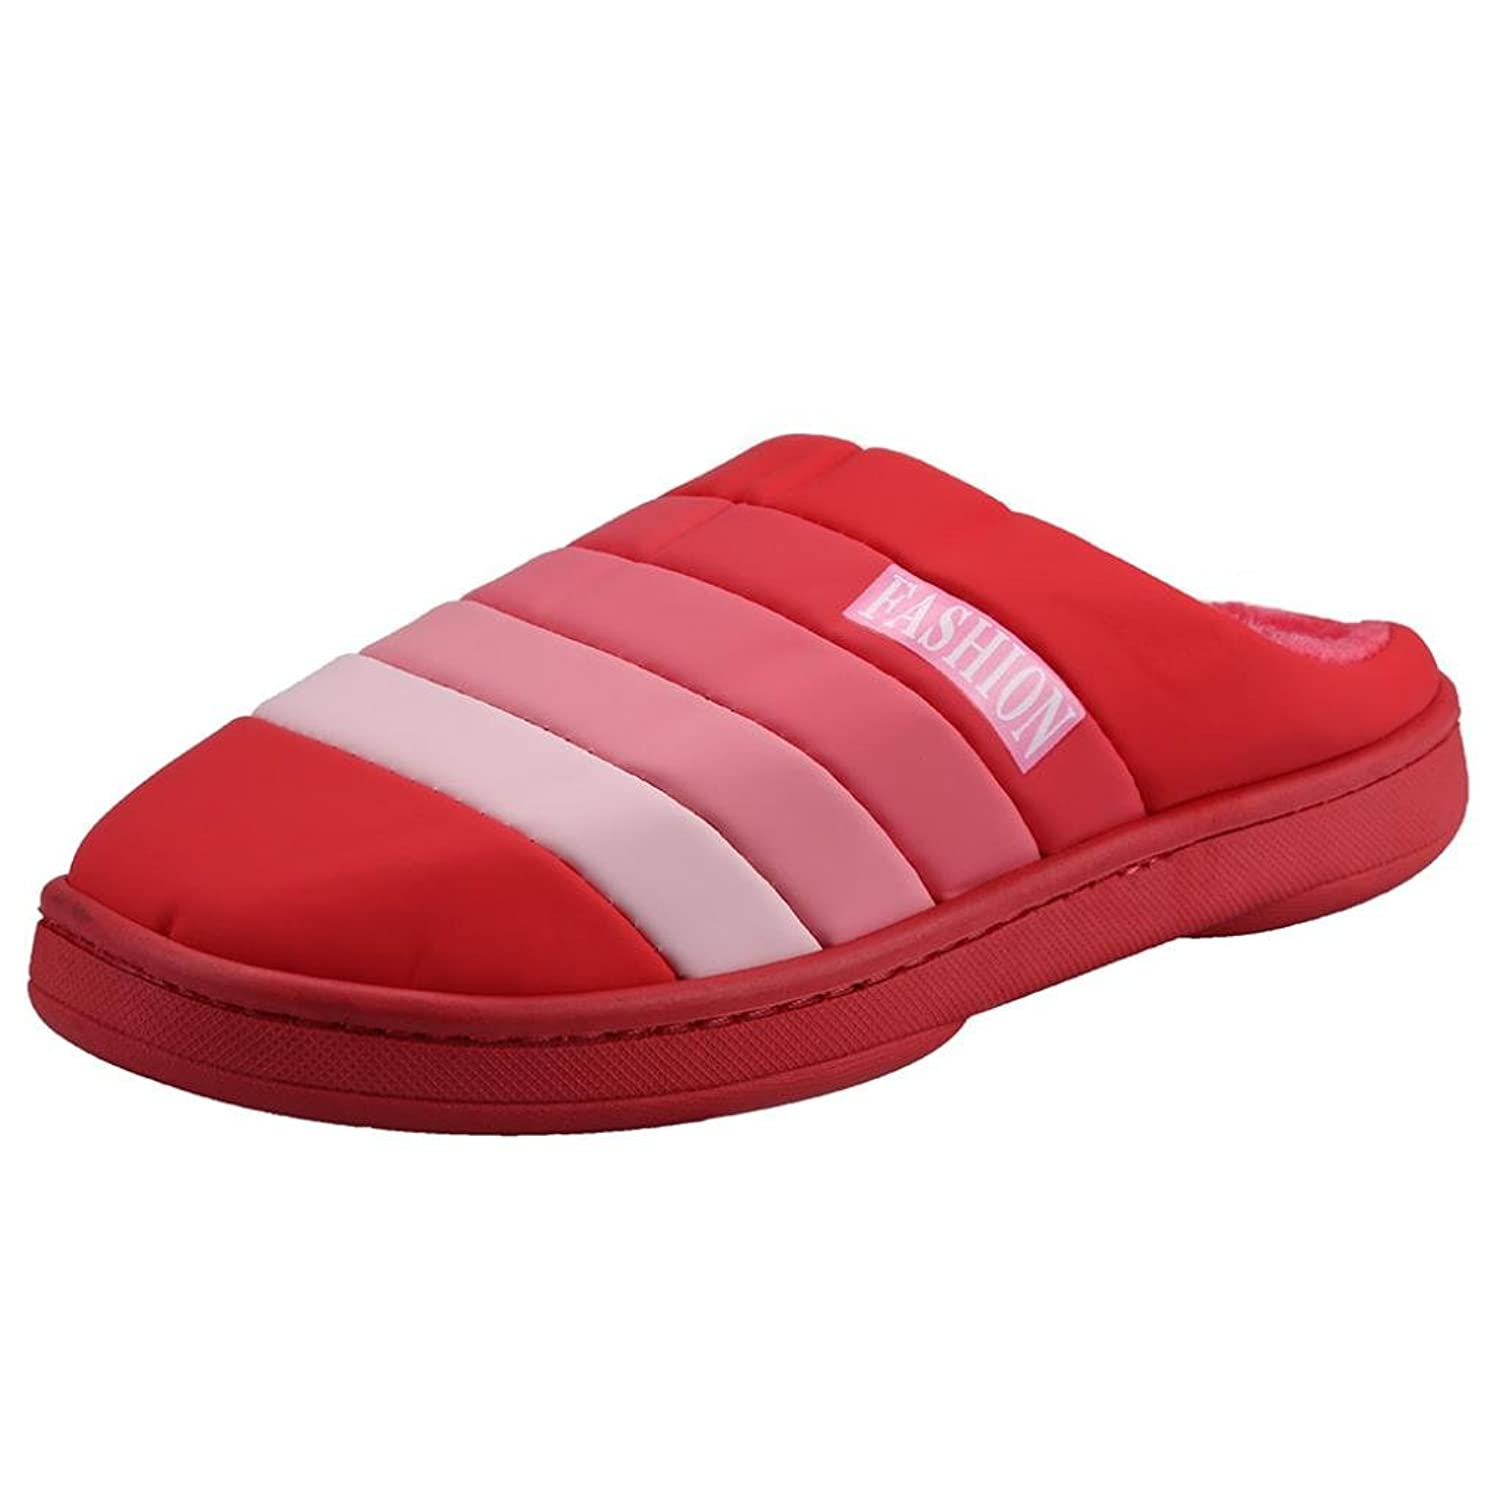 Women's Winter Boots, Egmy Home Floor Soft Slippers Female Cotton-padded Shoes